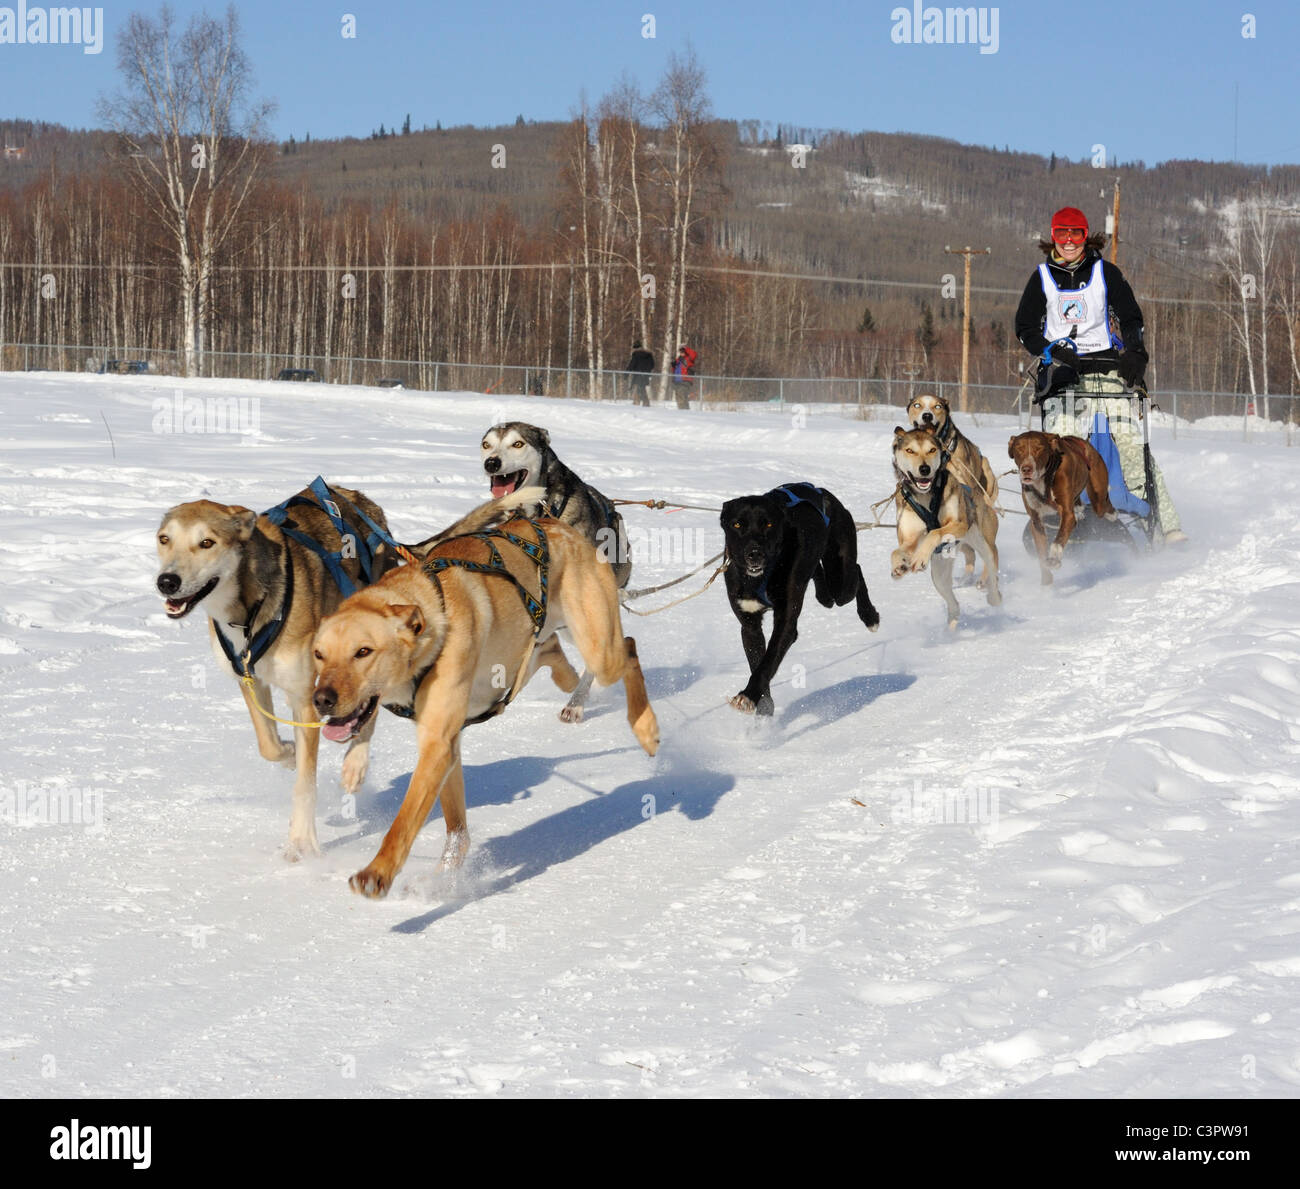 Limited North American Championship Sled Dog Races.  Six Sled Dog Competition. March 11-13, 2010 in Fairbanks, Alaska. - Stock Image